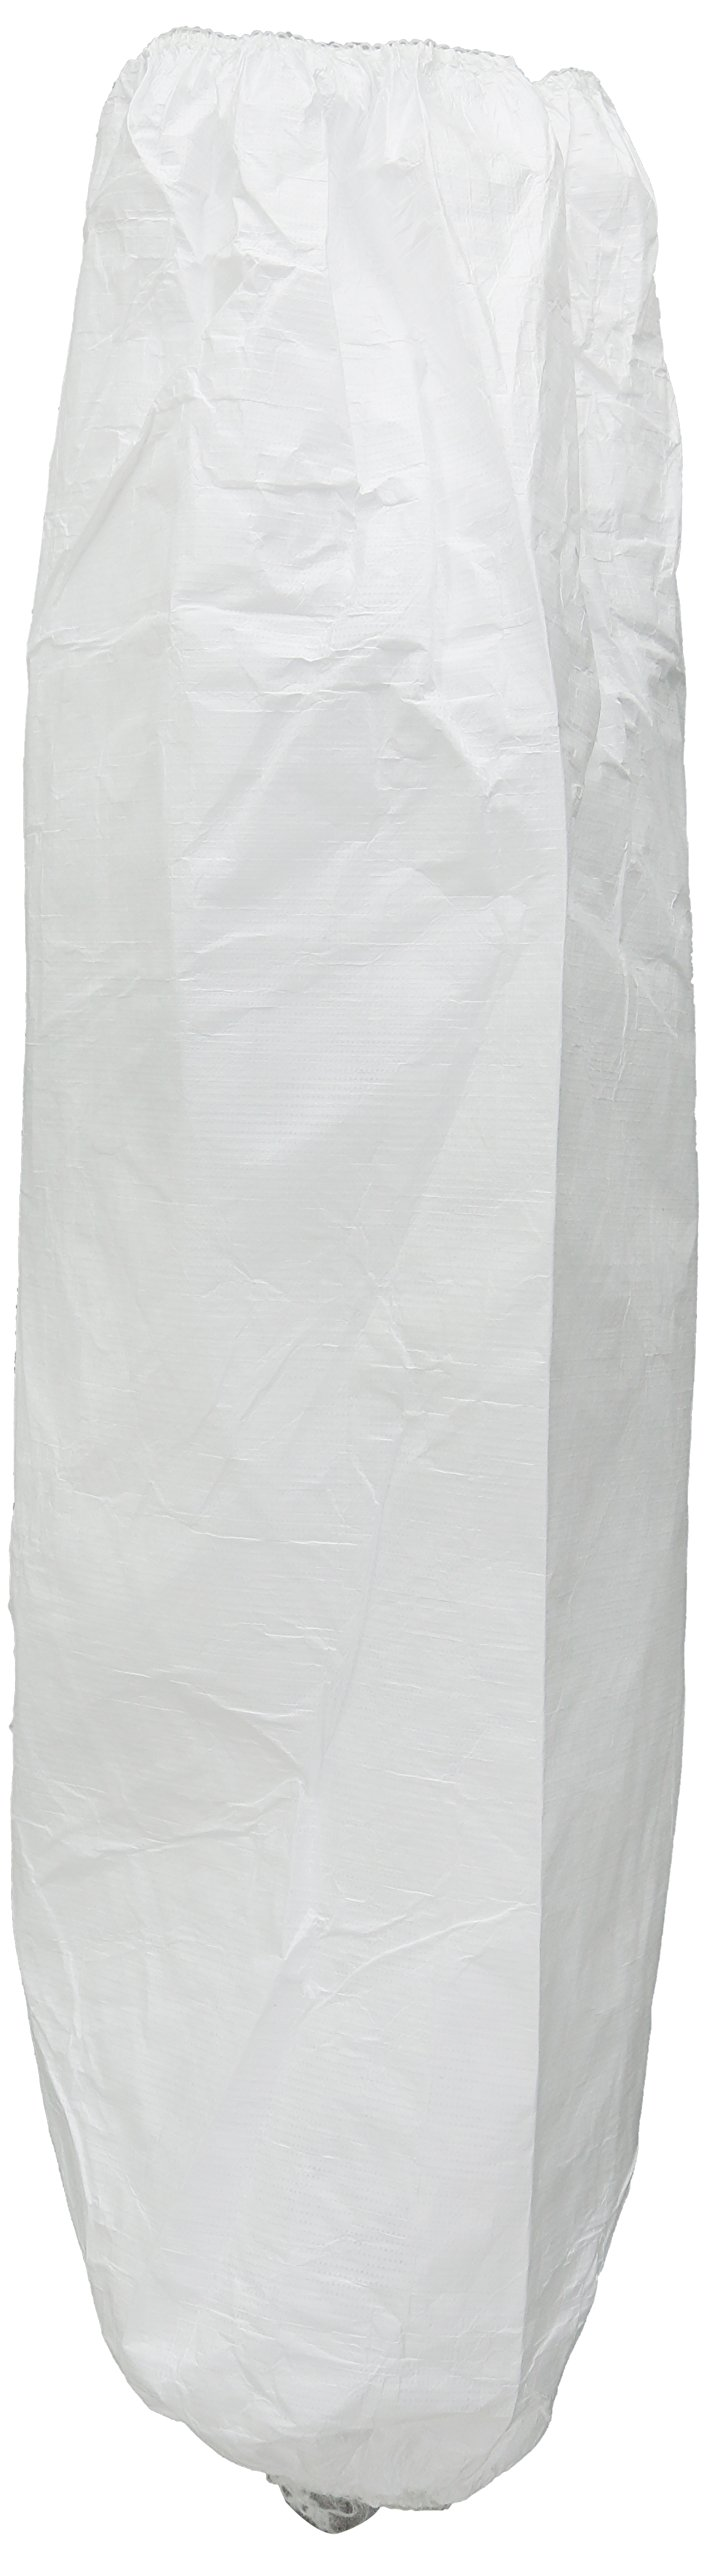 Dupont TY500SWH00020000 Tyvek Sleeve, 18'' Long (Pack of 200)